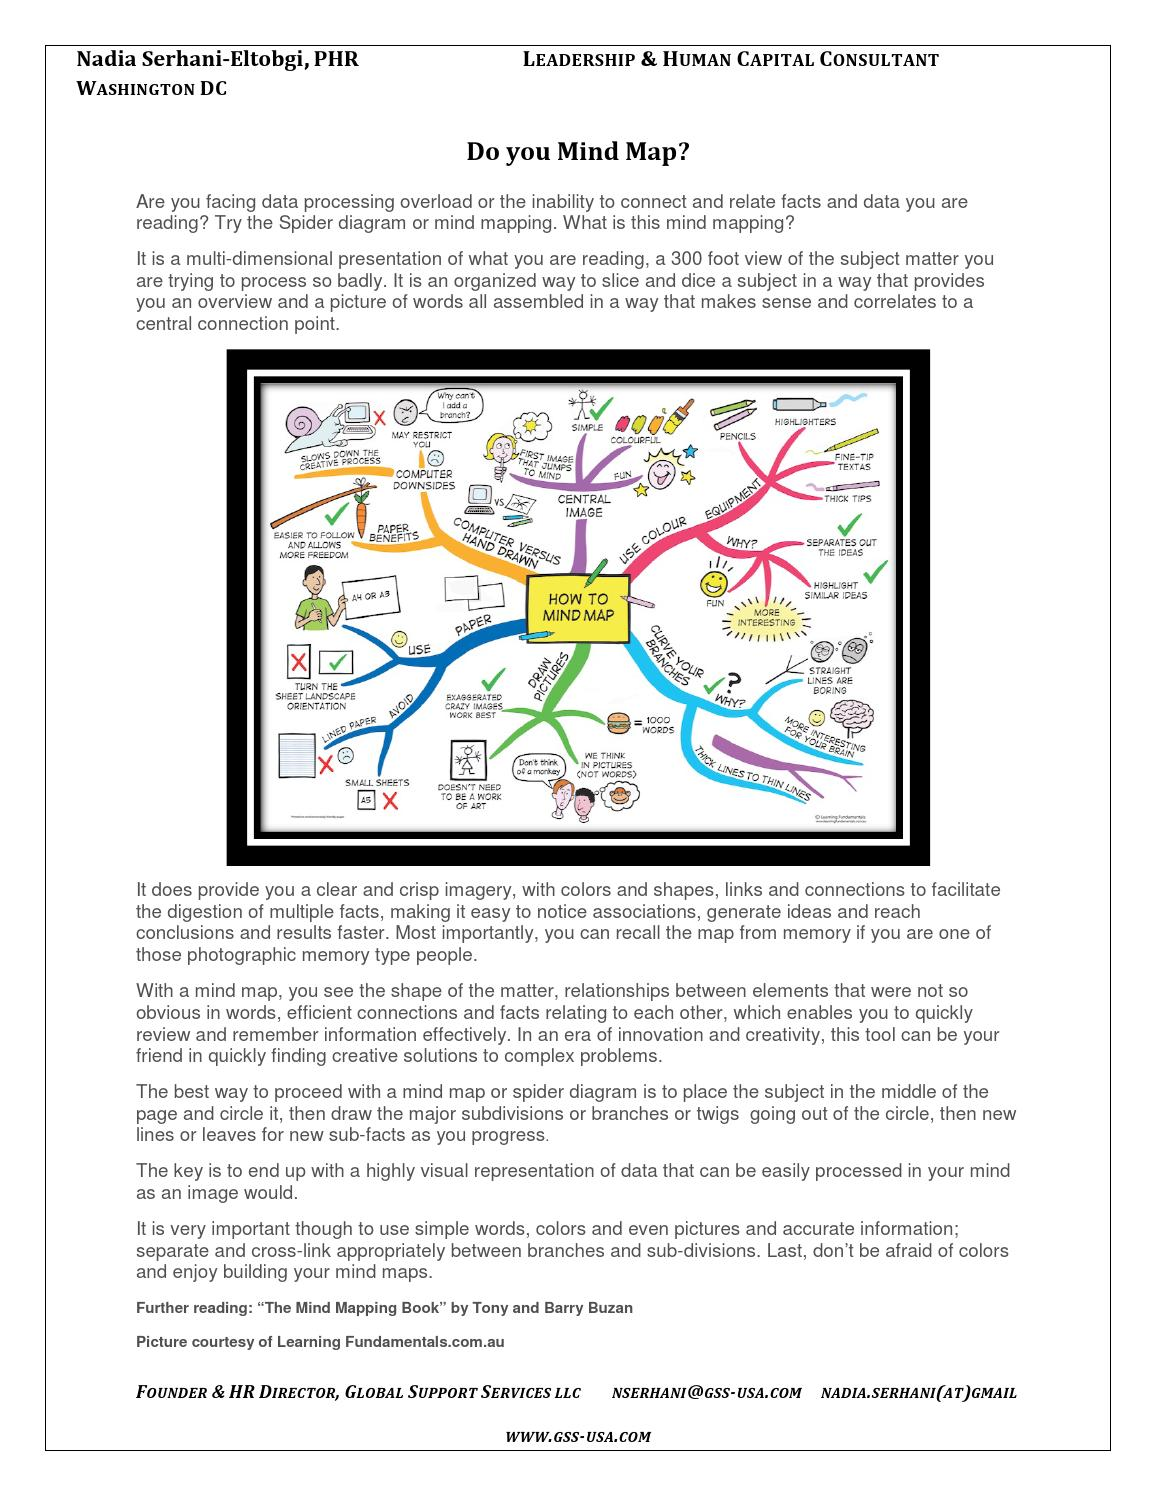 Do you mind map by nadia serhani issuu ccuart Images